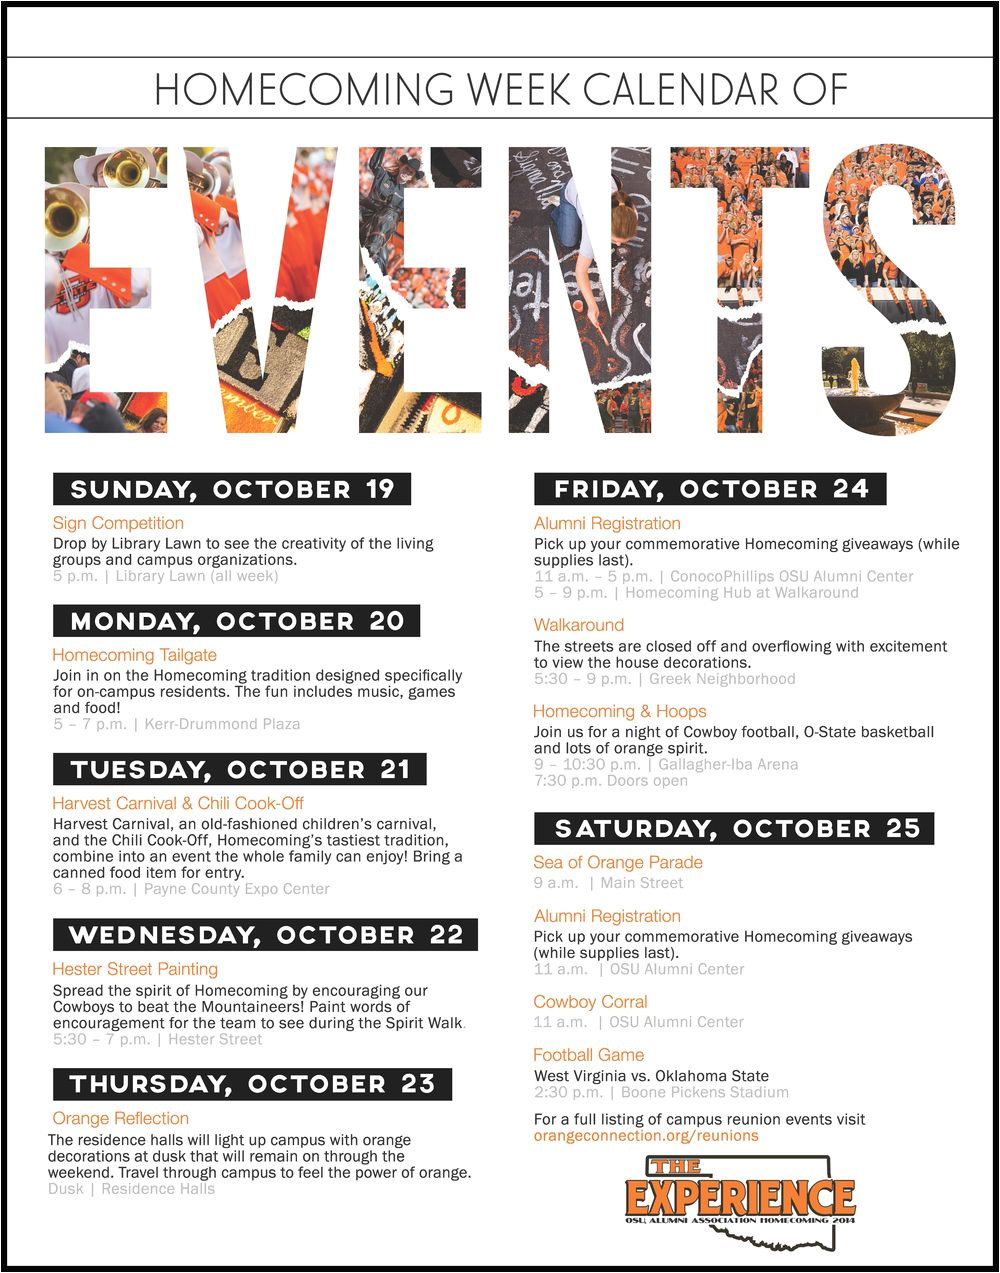 Template for Schedule Of events Schedule Of events Flyer Google Search Sample Flyers